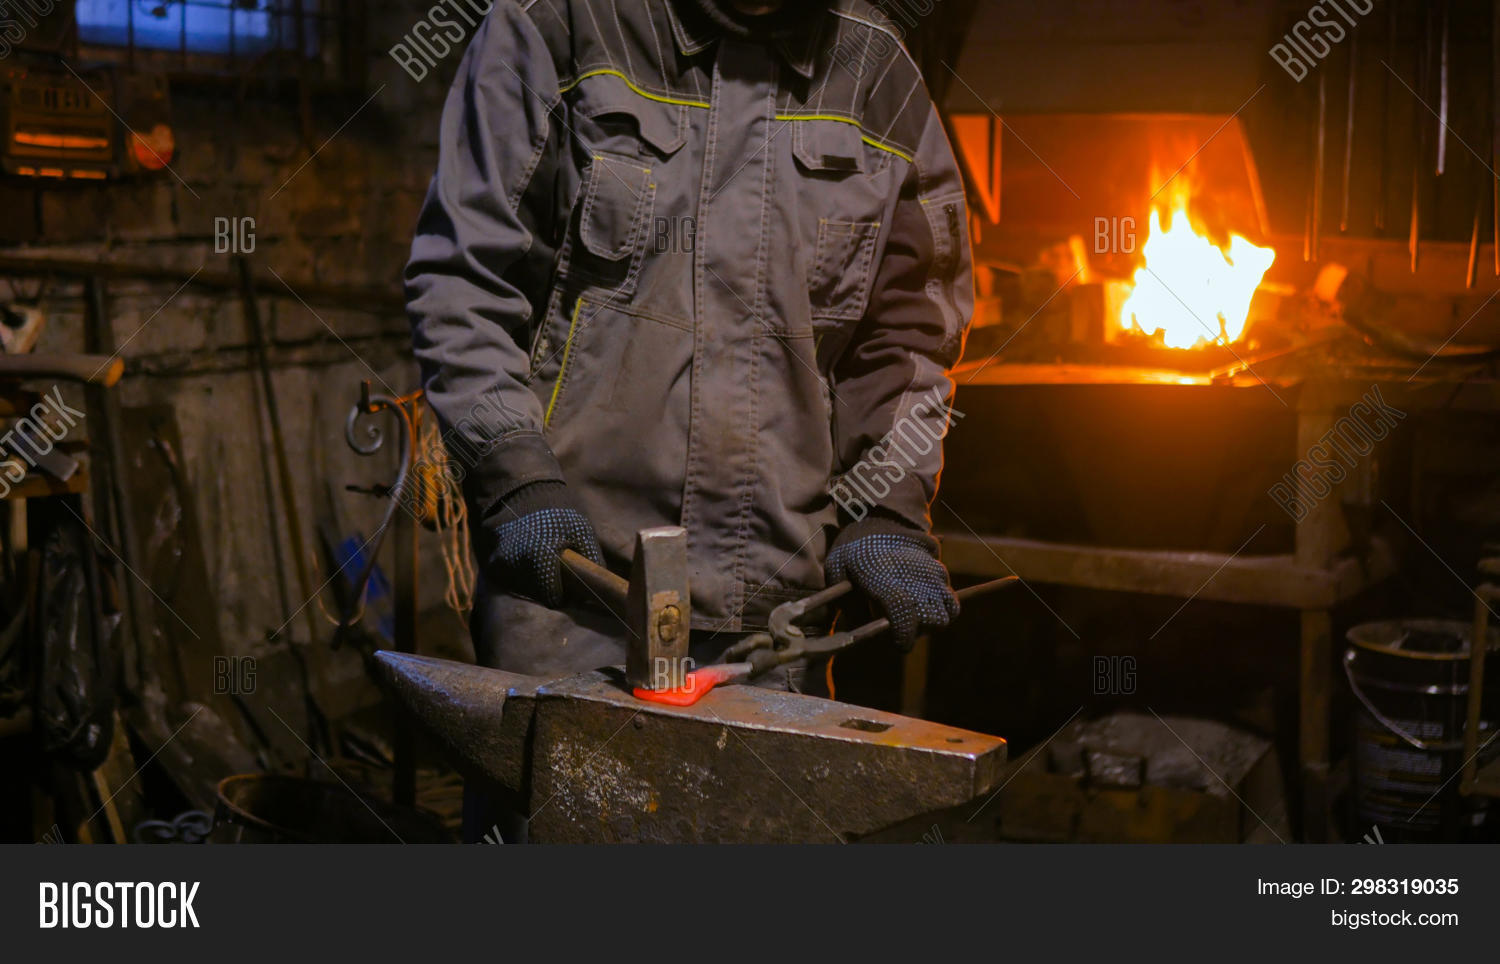 Professional Blacksmith Working With Metal On Anvil At Forge, Workshop. Handmade, Craftsmanship And